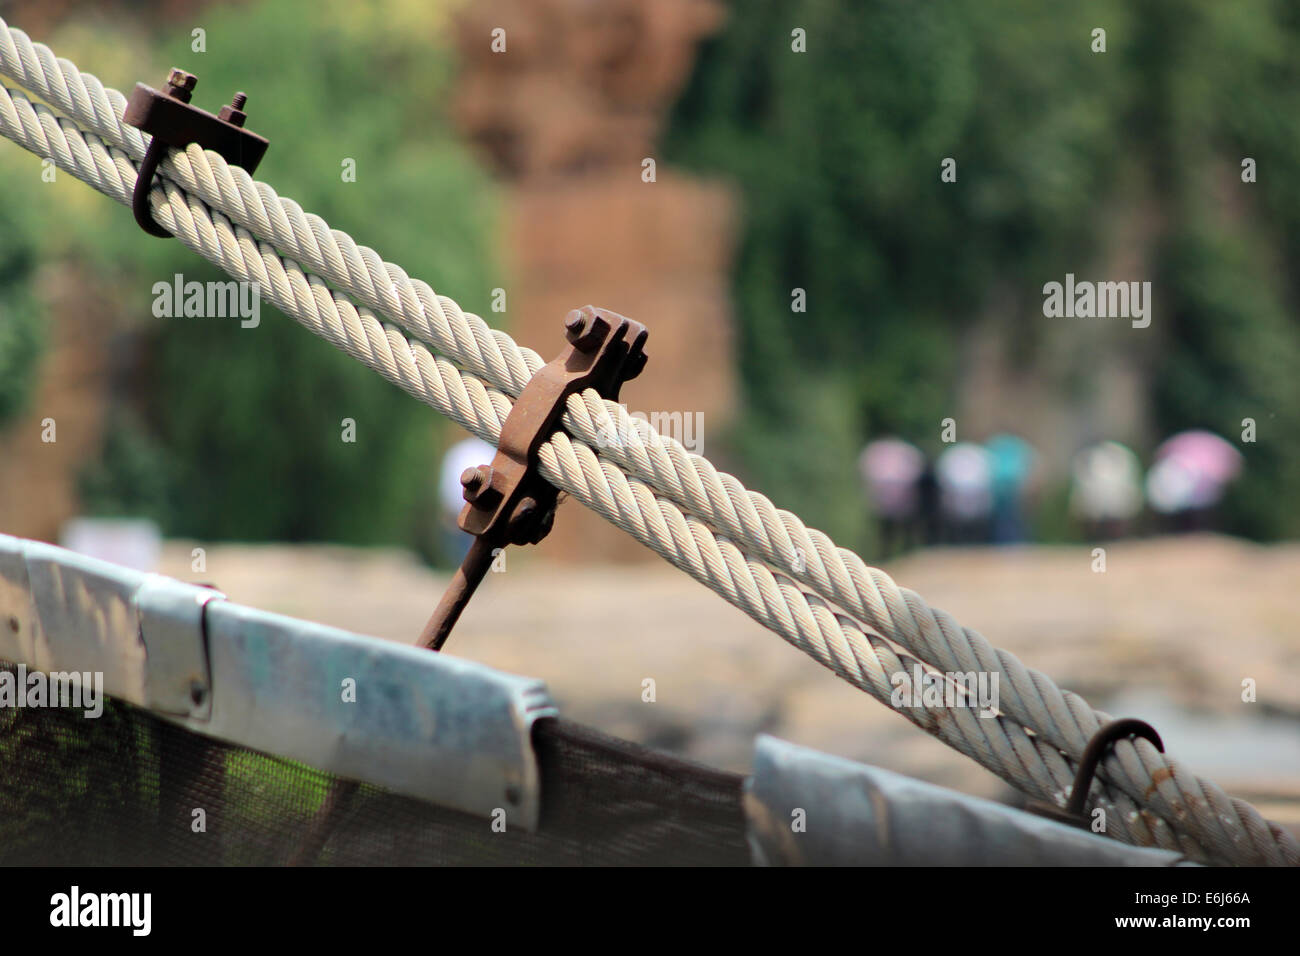 A strong iron rop with nut and bolt  in rope bridge for support . image is taken from noon time in gokak falls cotton Stock Photo